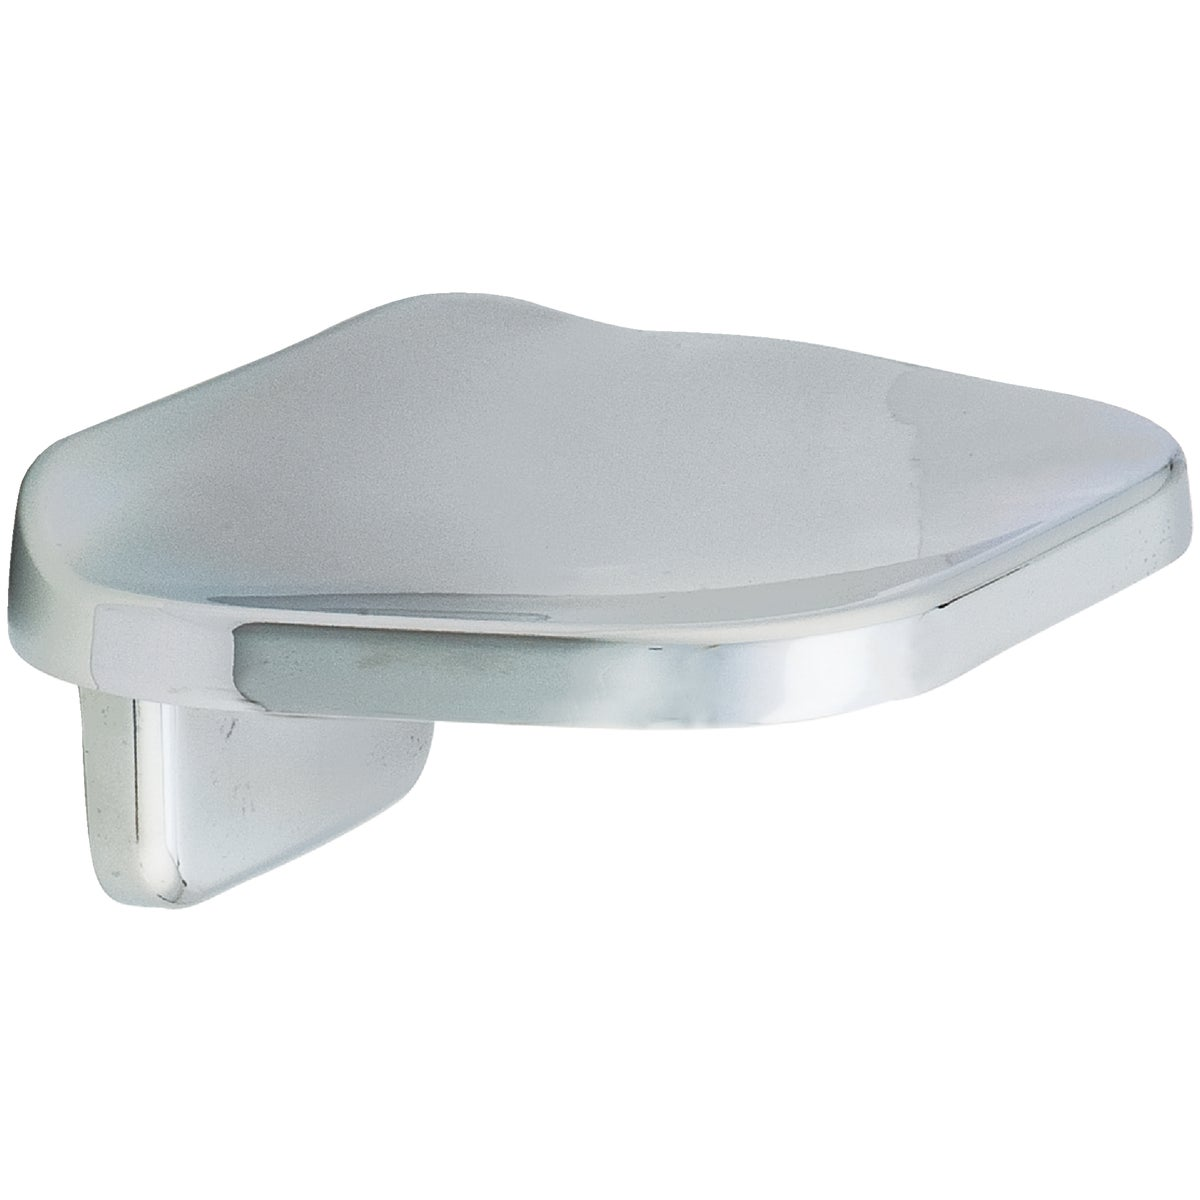 CHROME SOAP DISH - 409043 by Do it Best